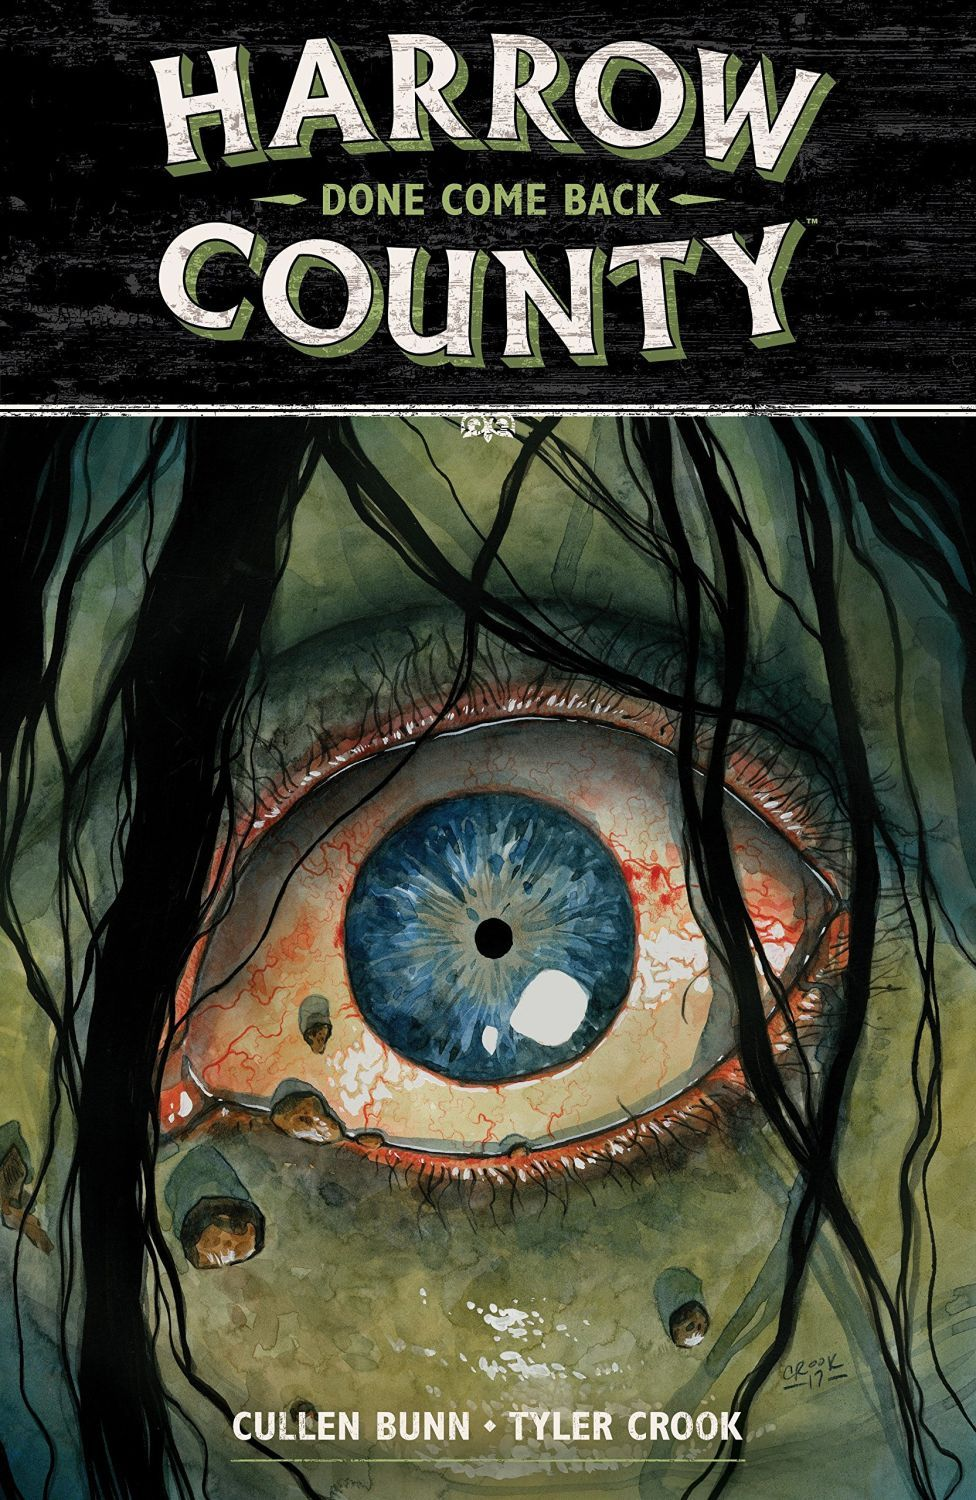 Harrow County Volume 8 Done Come Back - 1